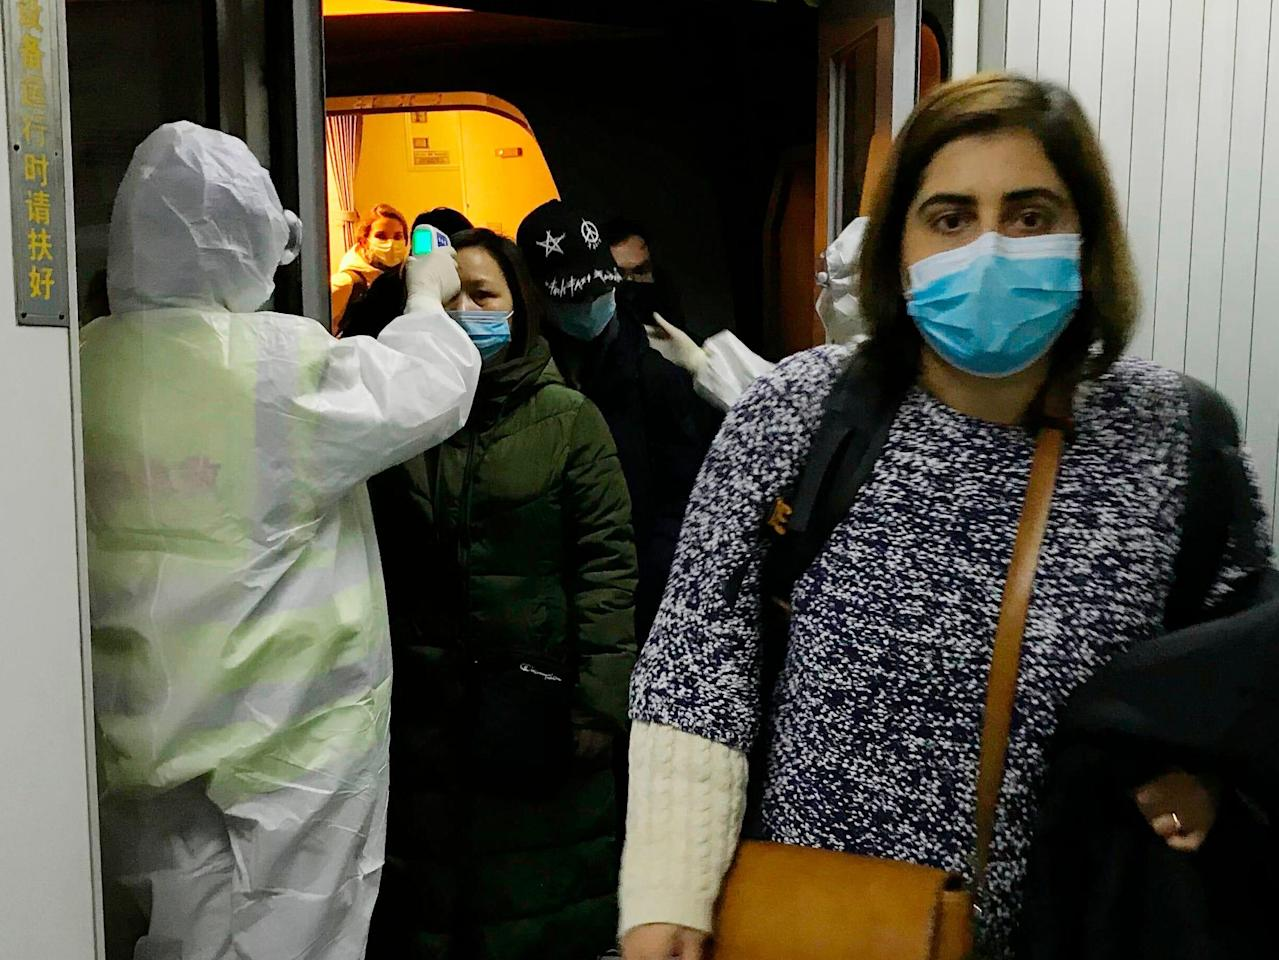 Americans living at the center of the Wuhan coronavirus outbreak aren't mad at China — they're outraged with the US: 'Why aren't the US embassies calling us?'